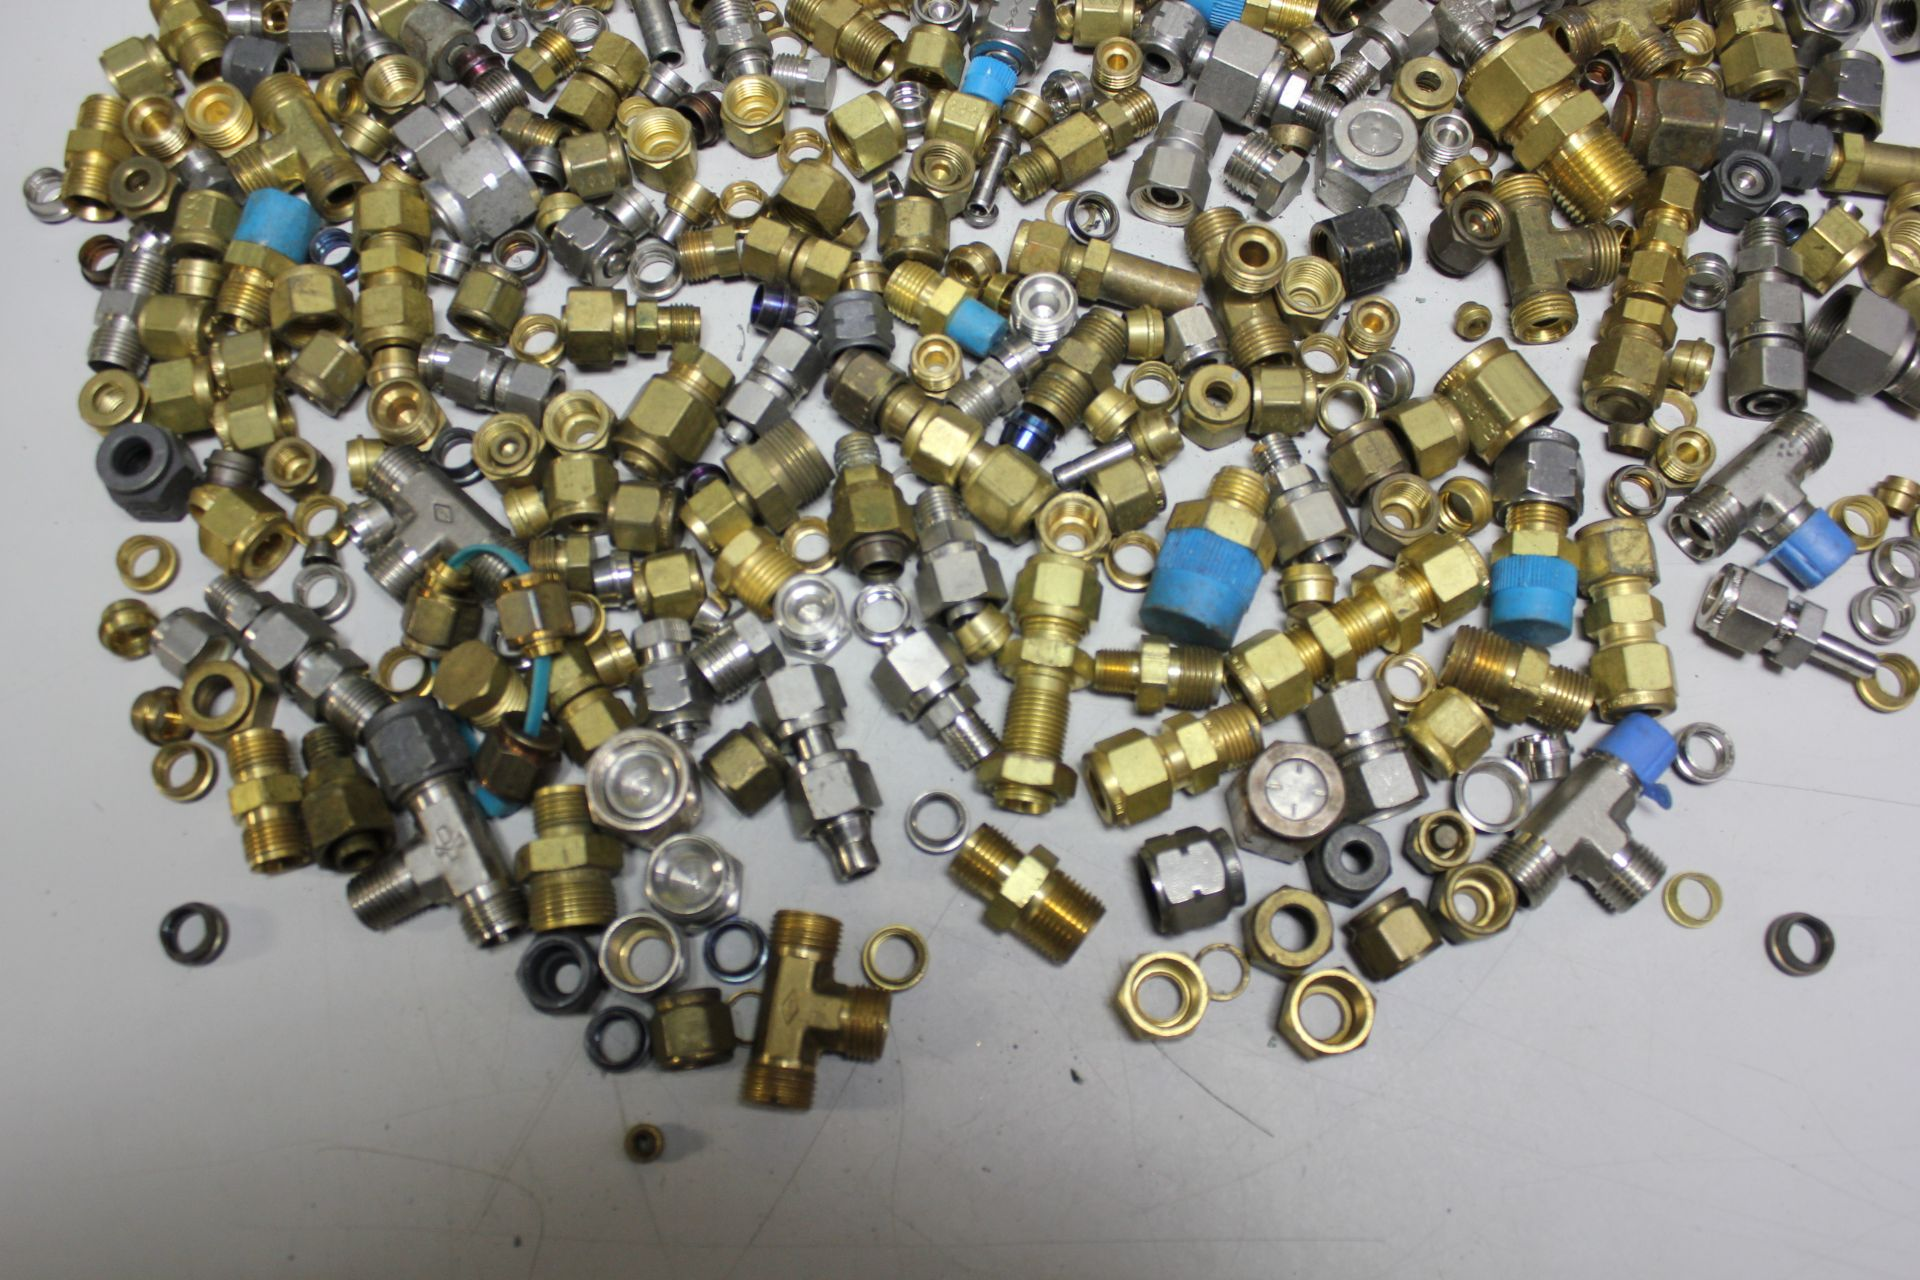 LOT OF COMPRESSION FITTINGS - SWAGELOK, CAJON, ETC - Image 8 of 8